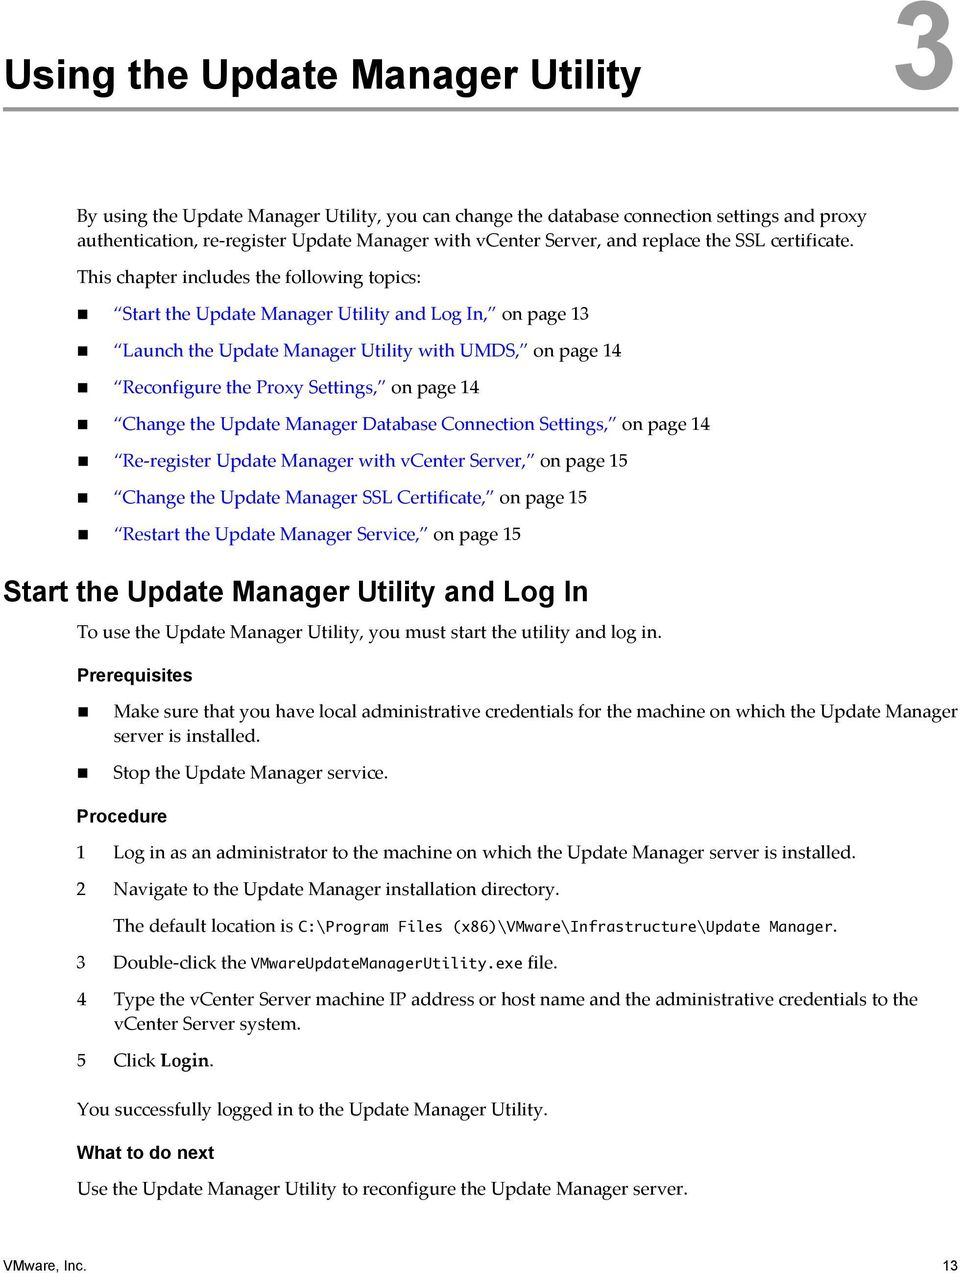 This chapter includes the following topics: Start the Update Manager Utility and Log In, on page 13 Launch the Update Manager Utility with UMDS, on page 14 Reconfigure the Proxy Settings, on page 14